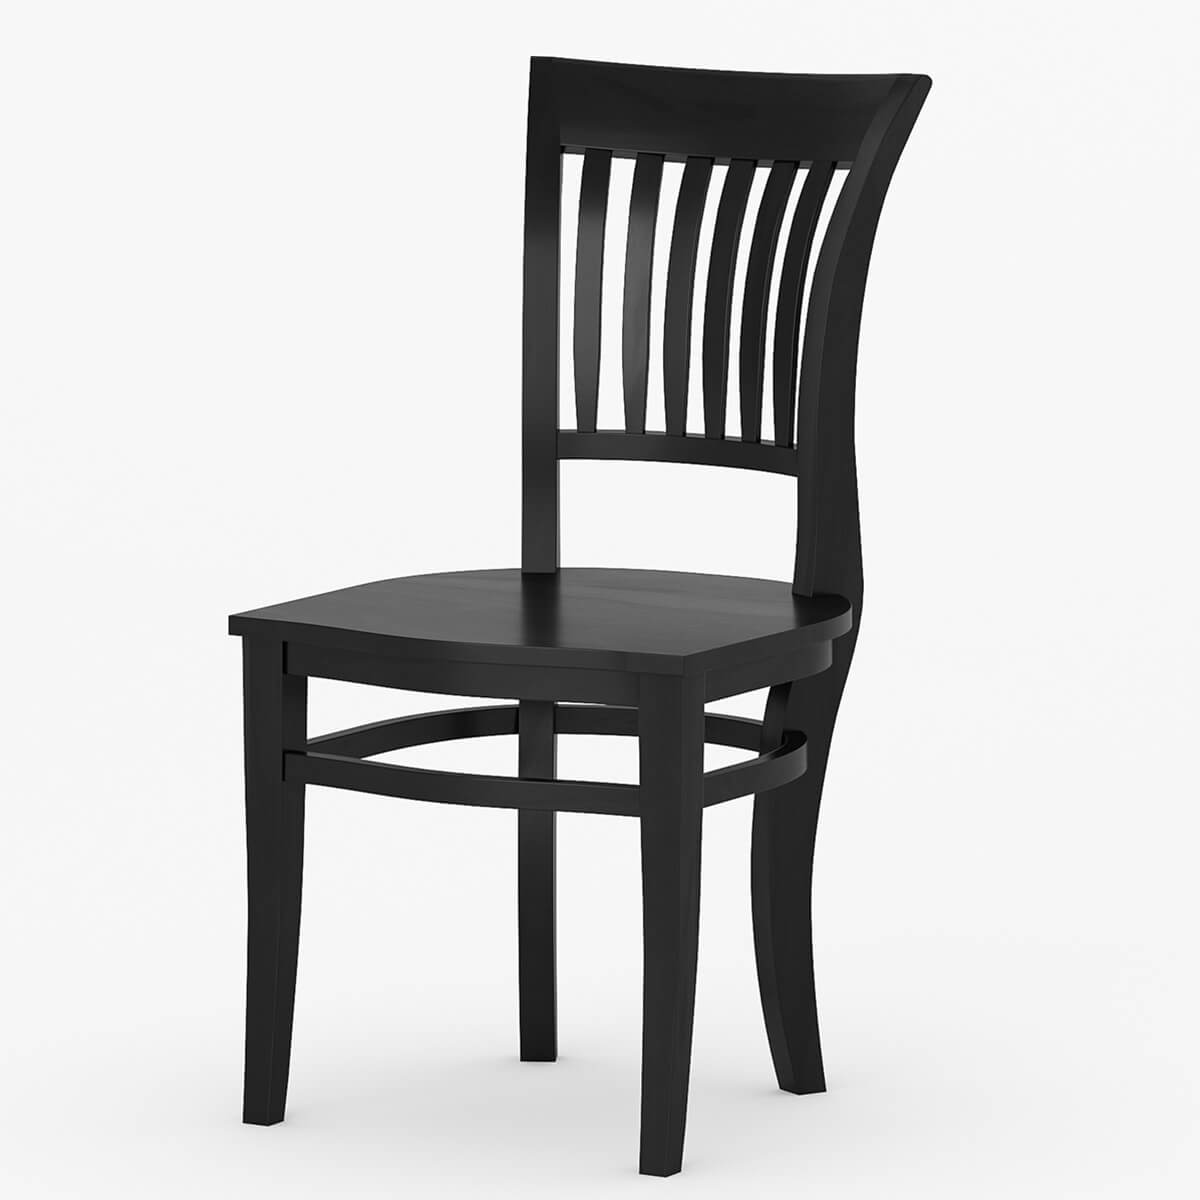 Chair Furniture Sierra Nevada Solid Wood Kitchen Side Dining Chair Furniture